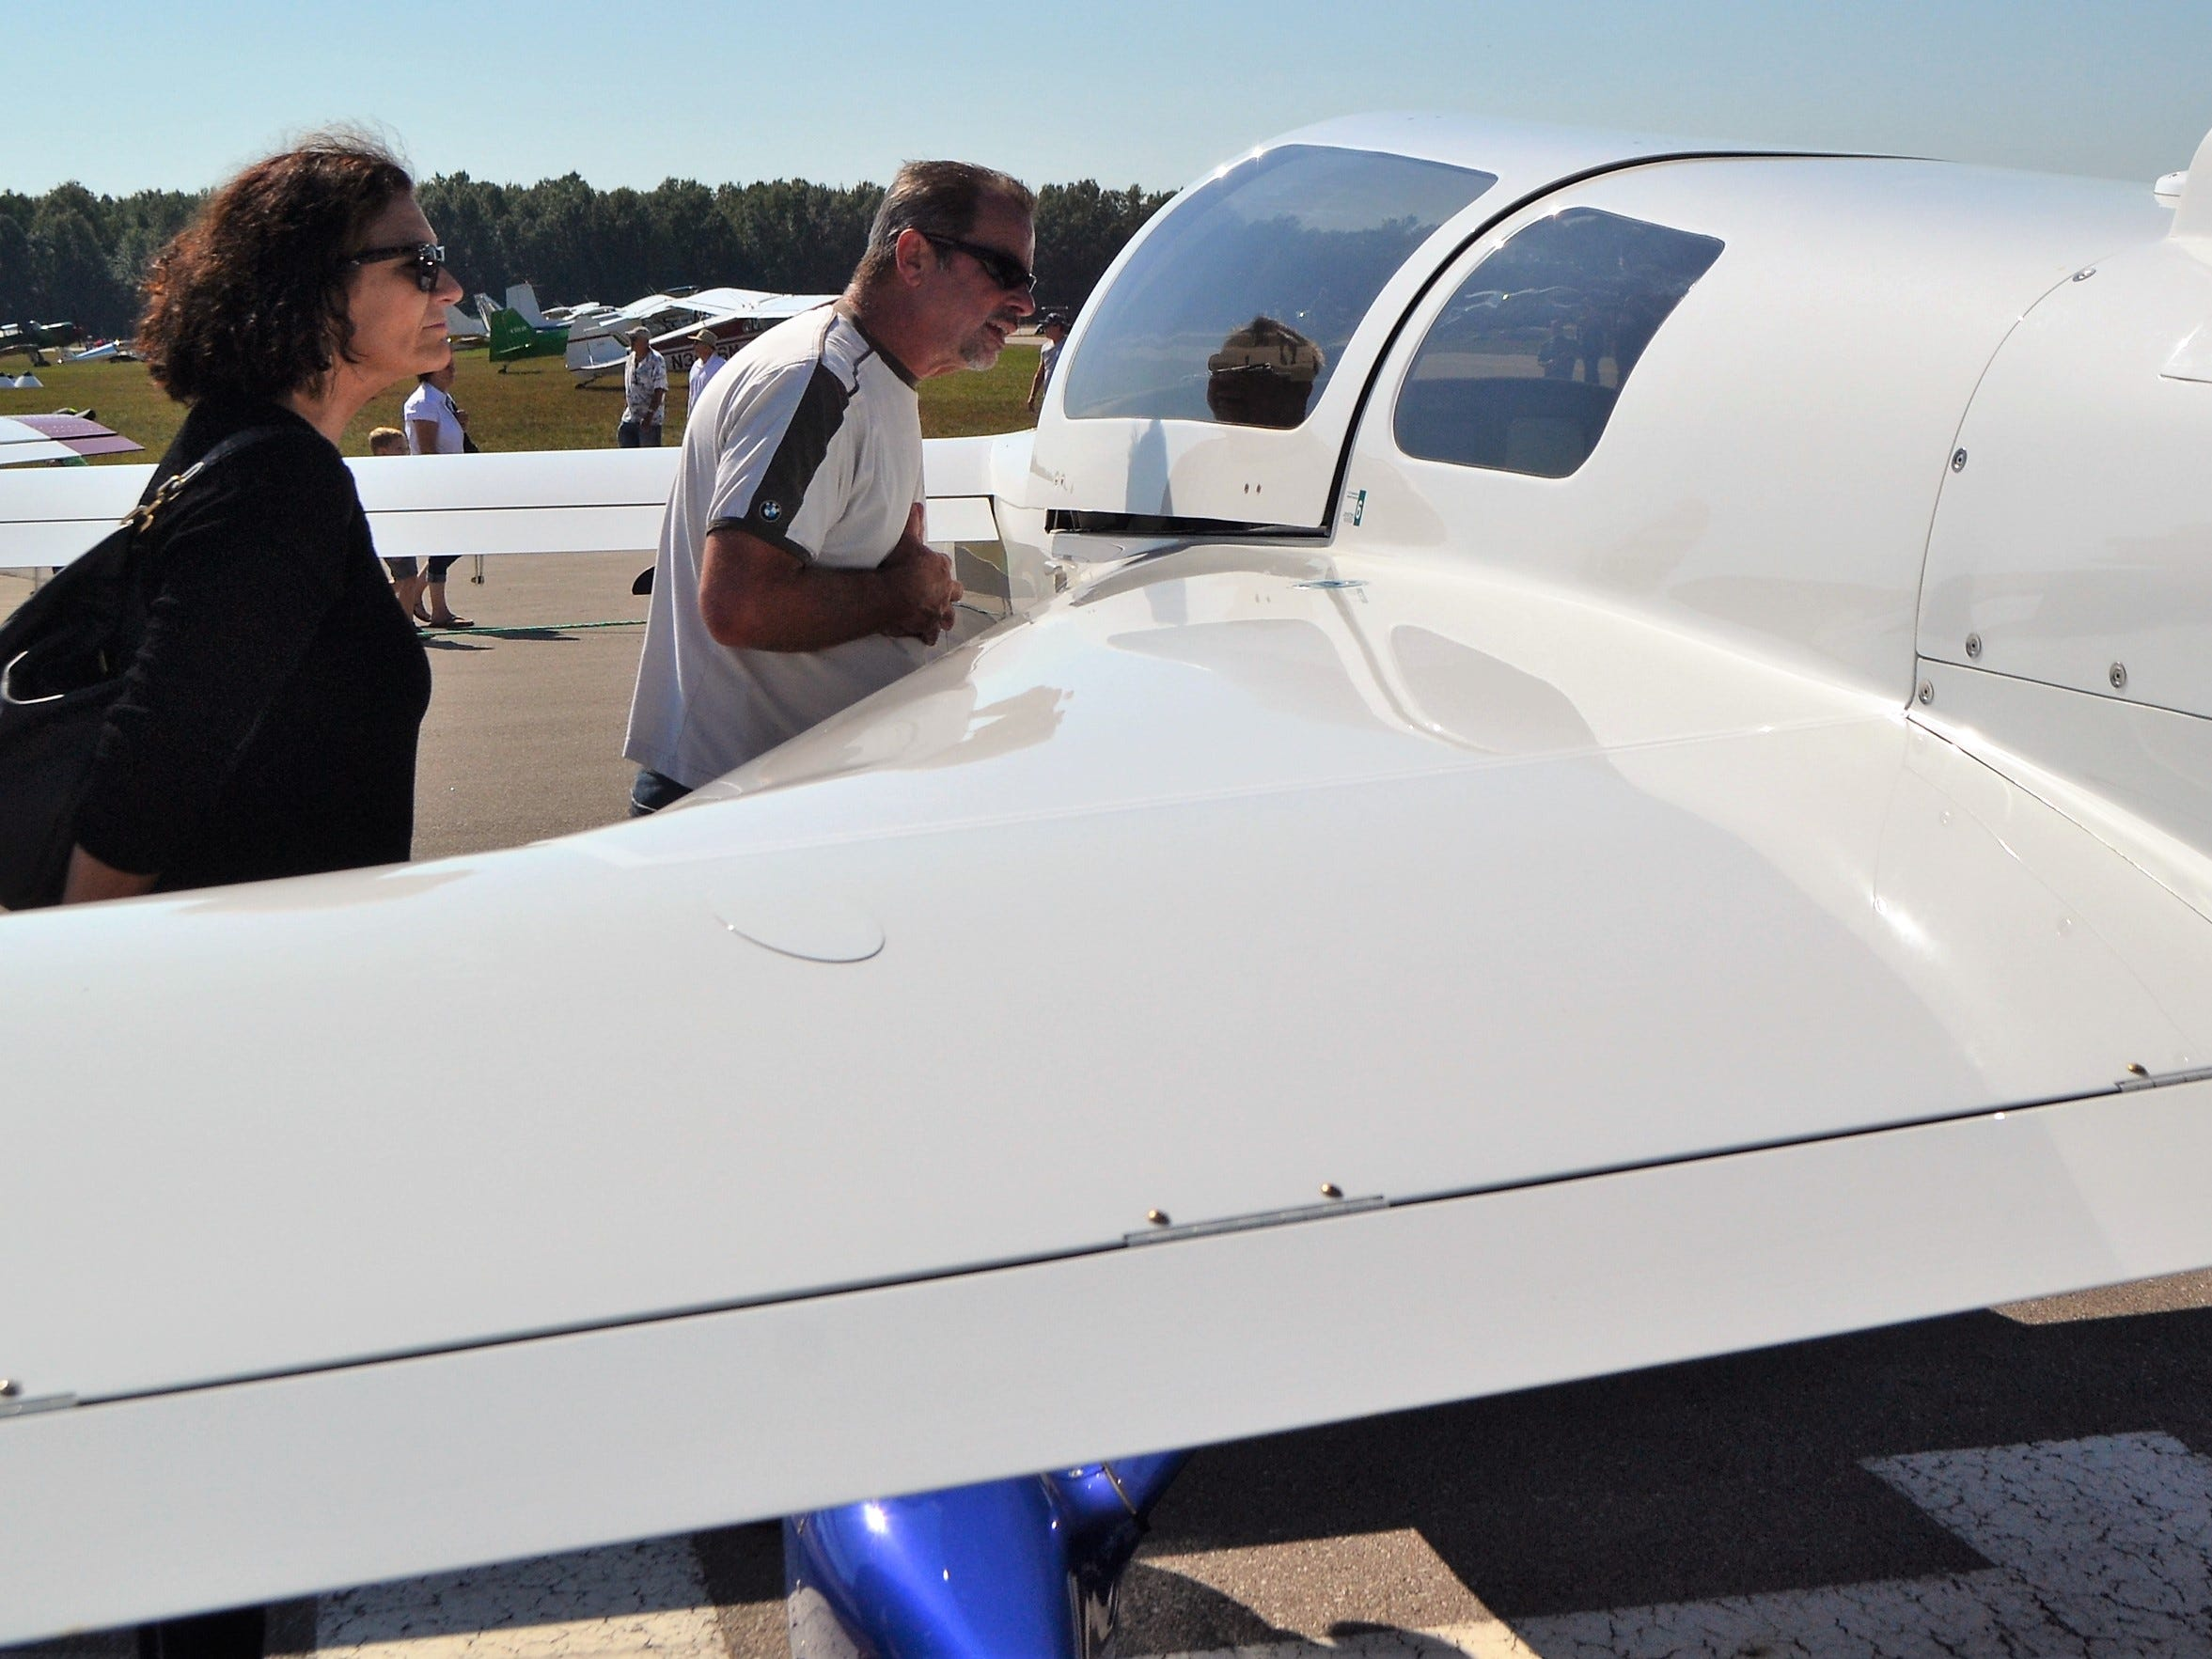 Todd Robbins of Green Bay takes a look inside the cabin of a Rutan N403R, a home-built aircraft, at the Oconto Fly-in, Car & Tractor Show on Sept. 15 at the Oconto-J. Douglas Bake Municipal Airport. At left is his wife, Roberta Robbins.